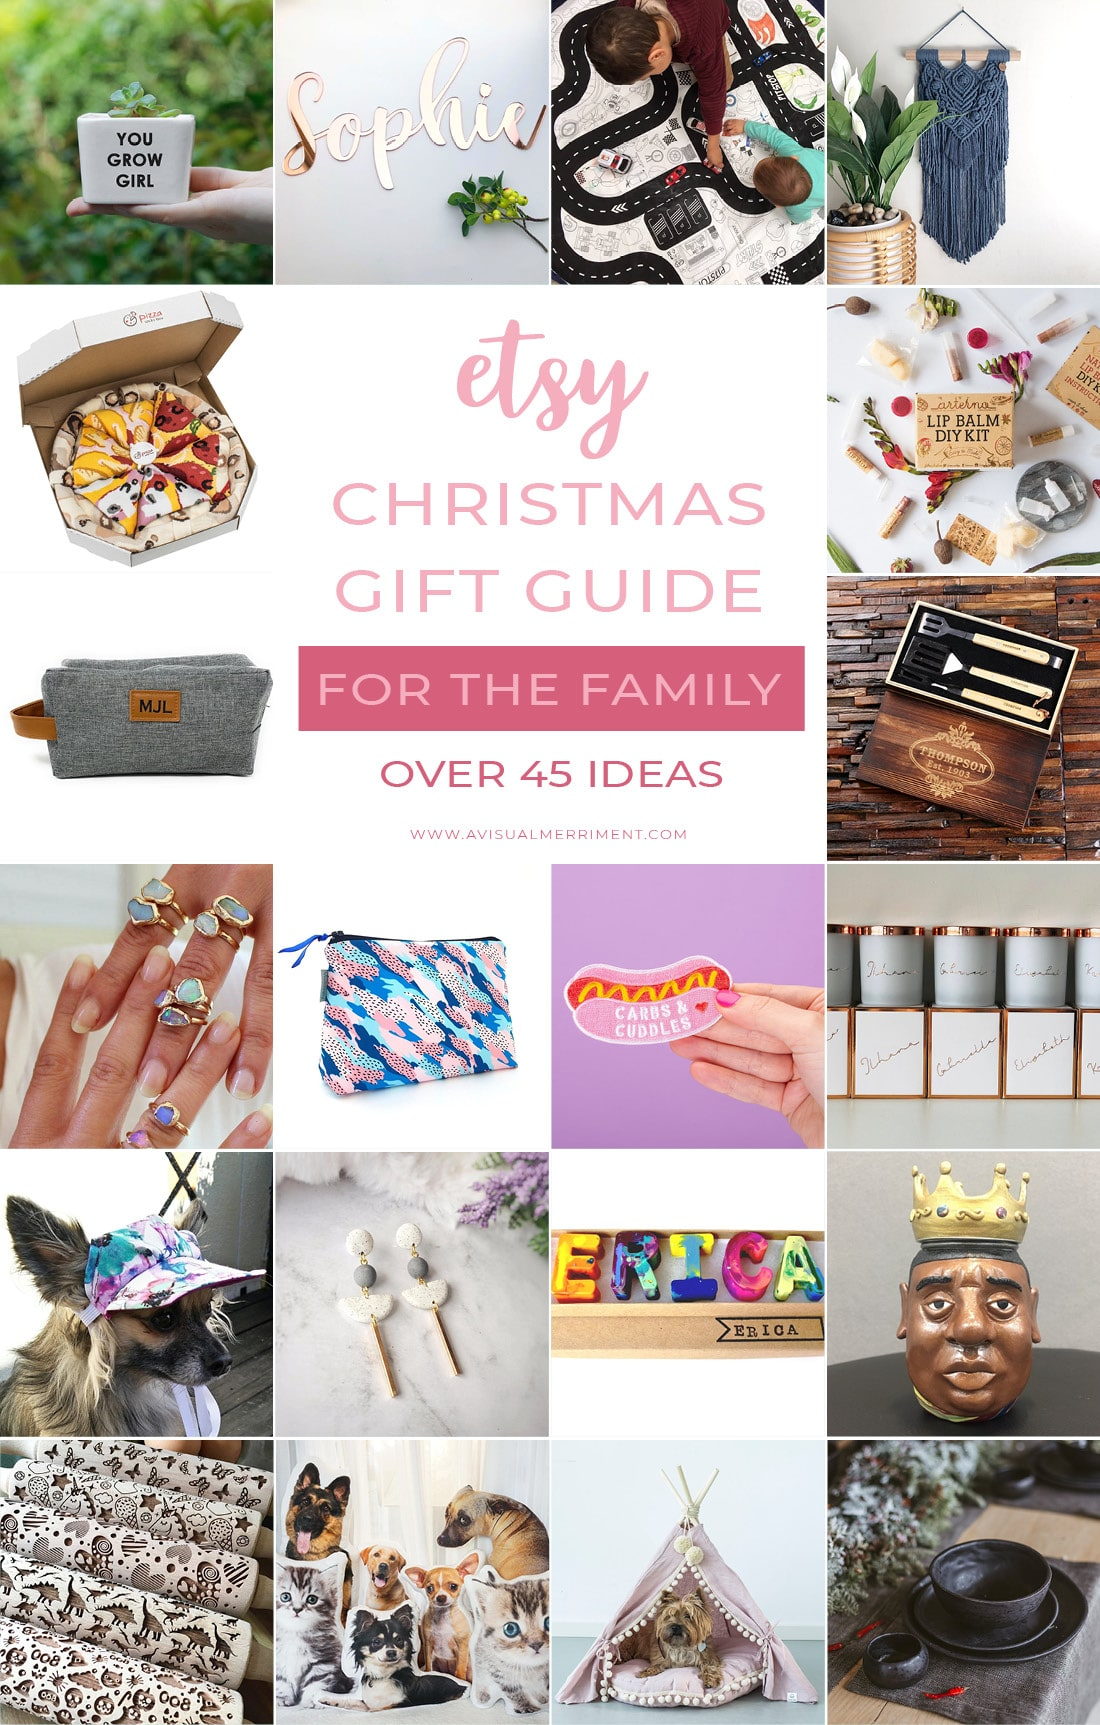 Etsy Christmas gift guide for the family